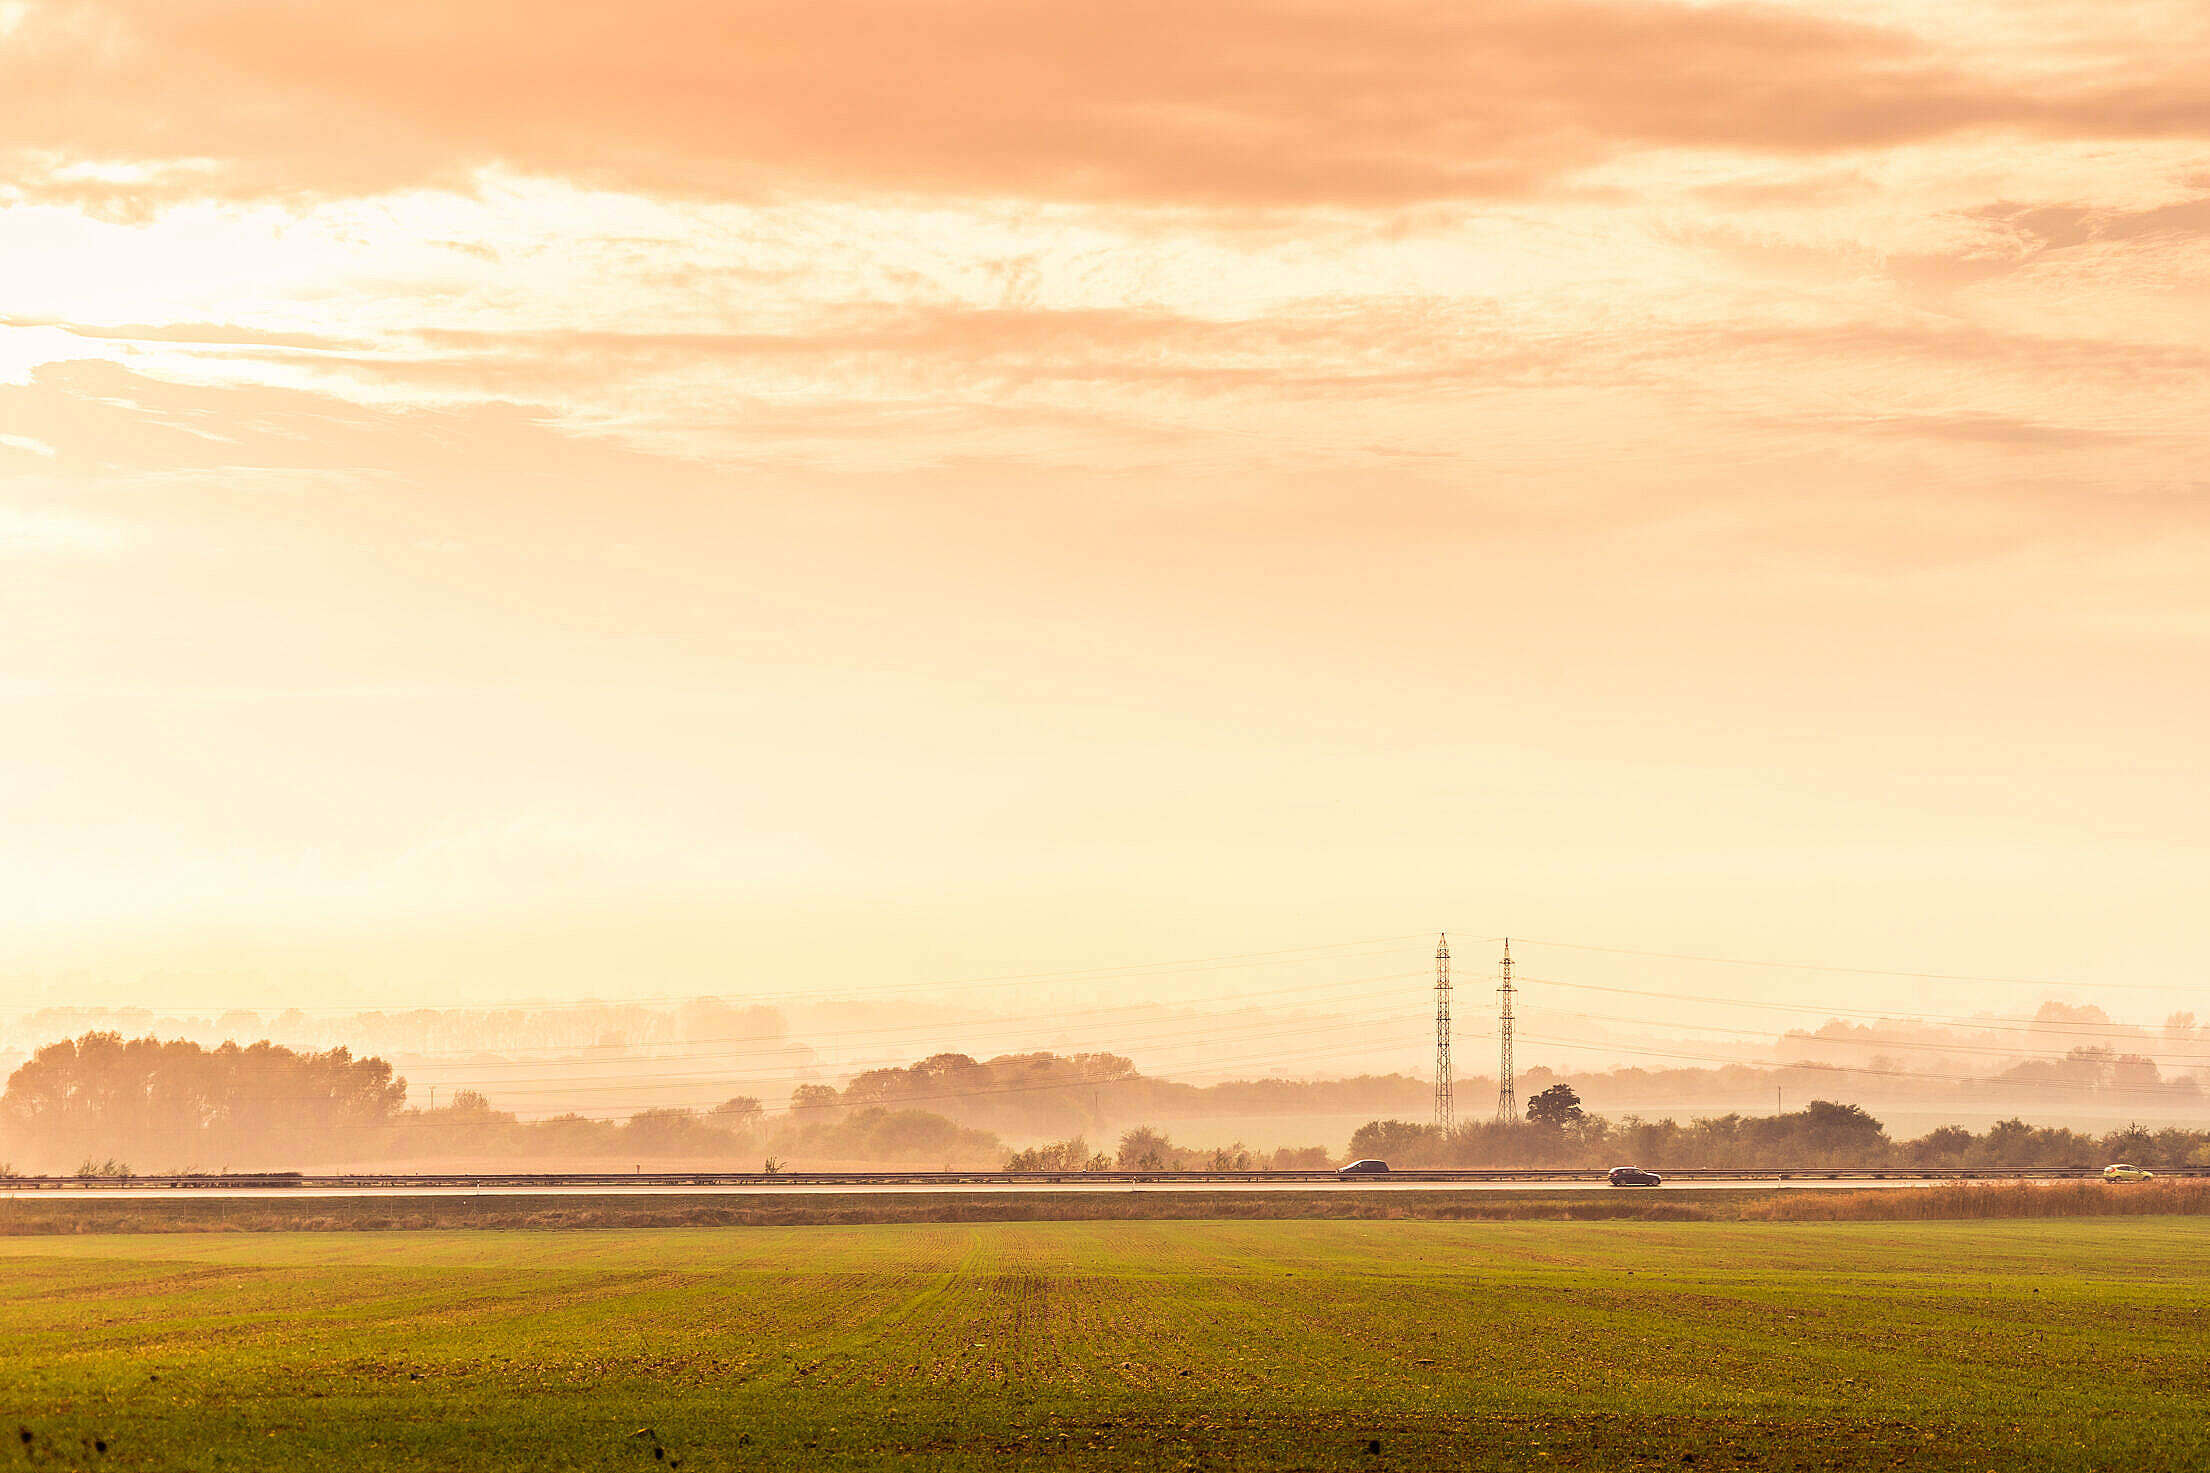 Highway Road with Cars and Electricity Pylons Foggy Golden Hour Free Stock Photo